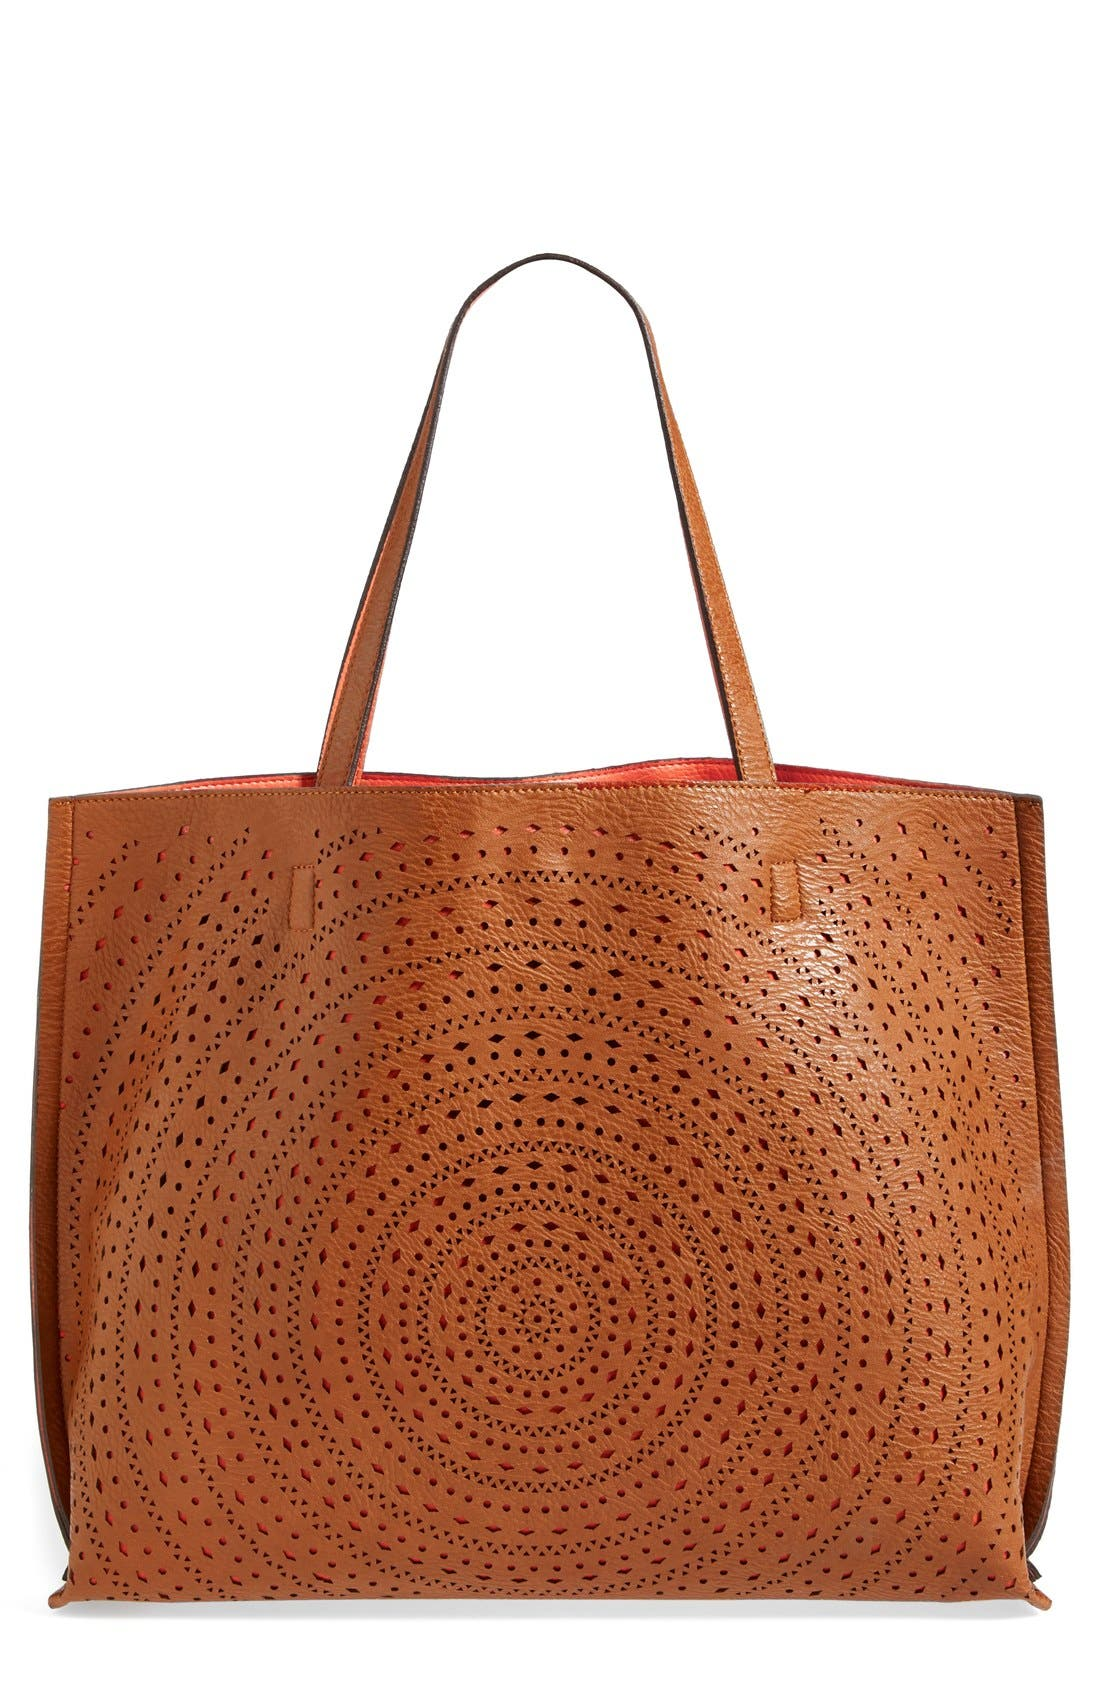 Alternate Image 1 Selected - Street Level Laser Cut Reversible Faux Leather Tote